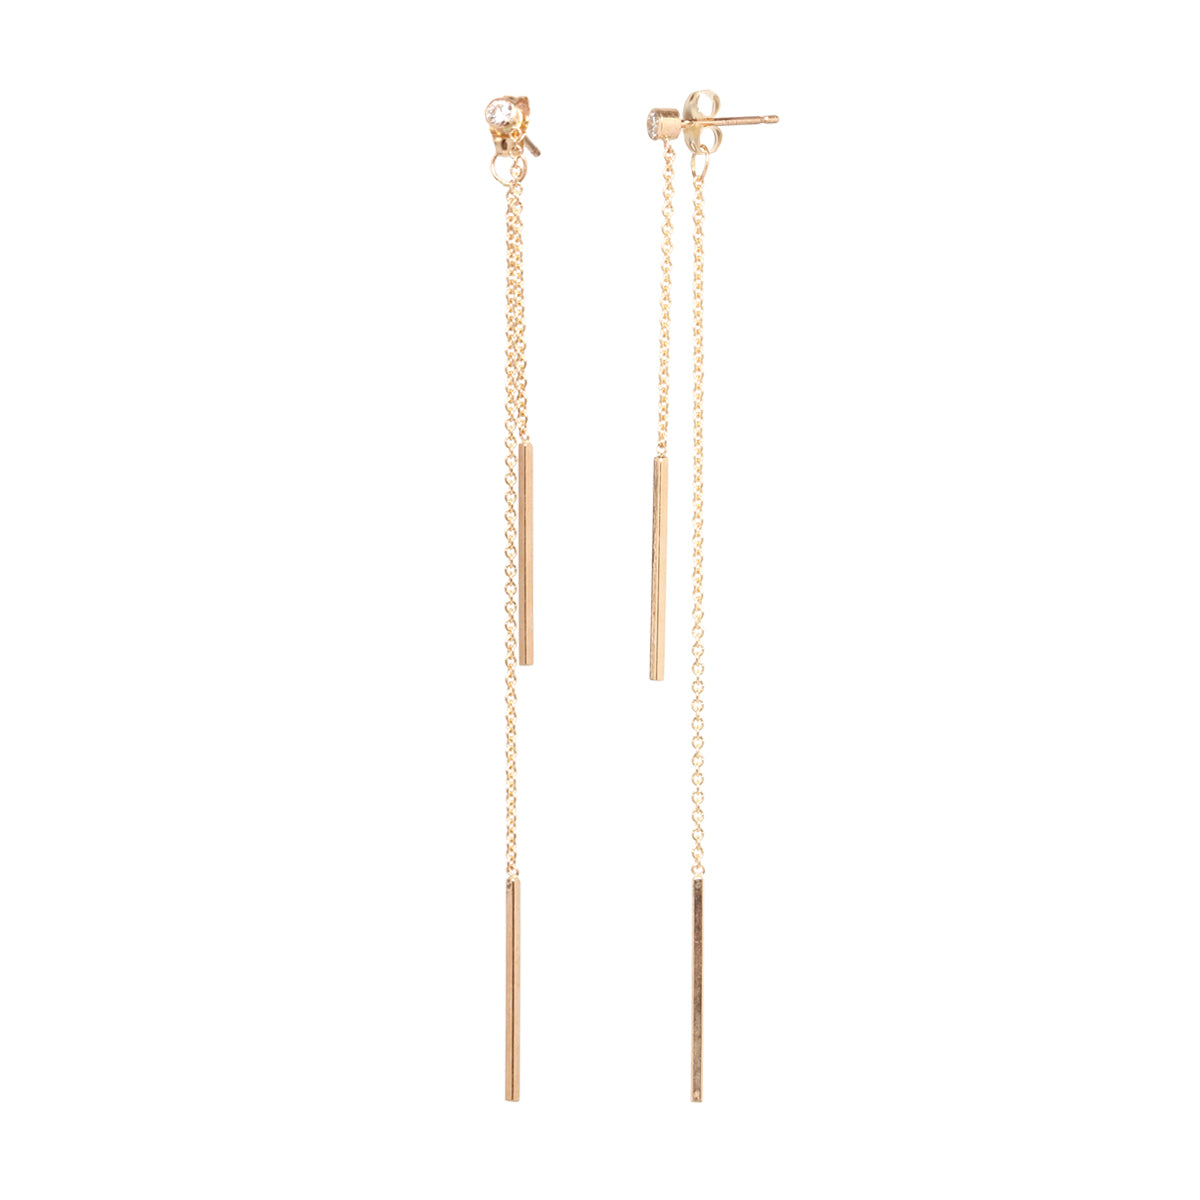 chain designs earrings extra long earring product detail beautiful gold women tone for